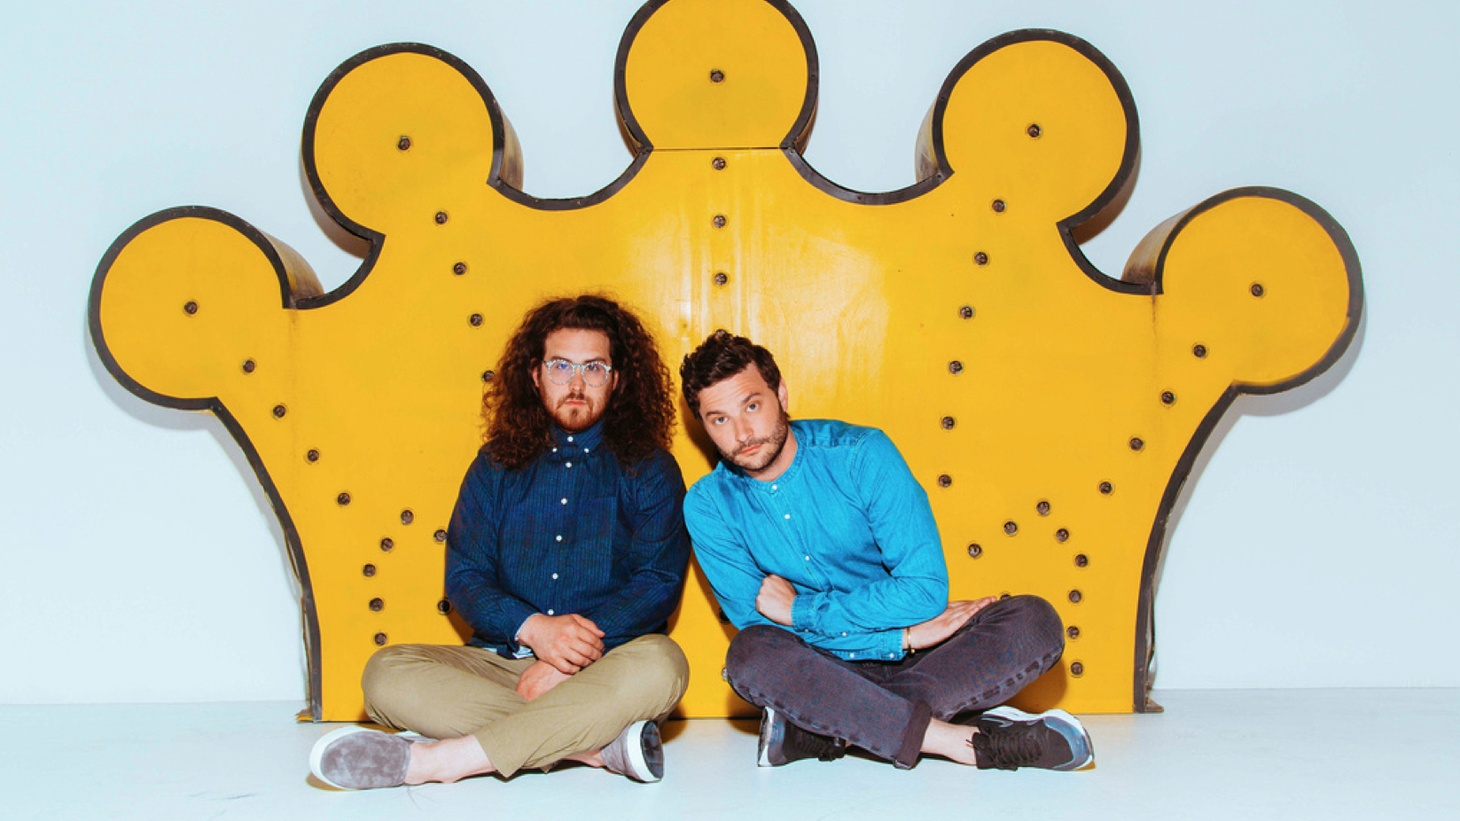 """JR JR shares """"Big Bear Mountain"""" off their forthcoming double album. Take a good listen to the song; Josh Epstein says it's about purpose. """"When we are gone, all that is left of a life is legacy."""